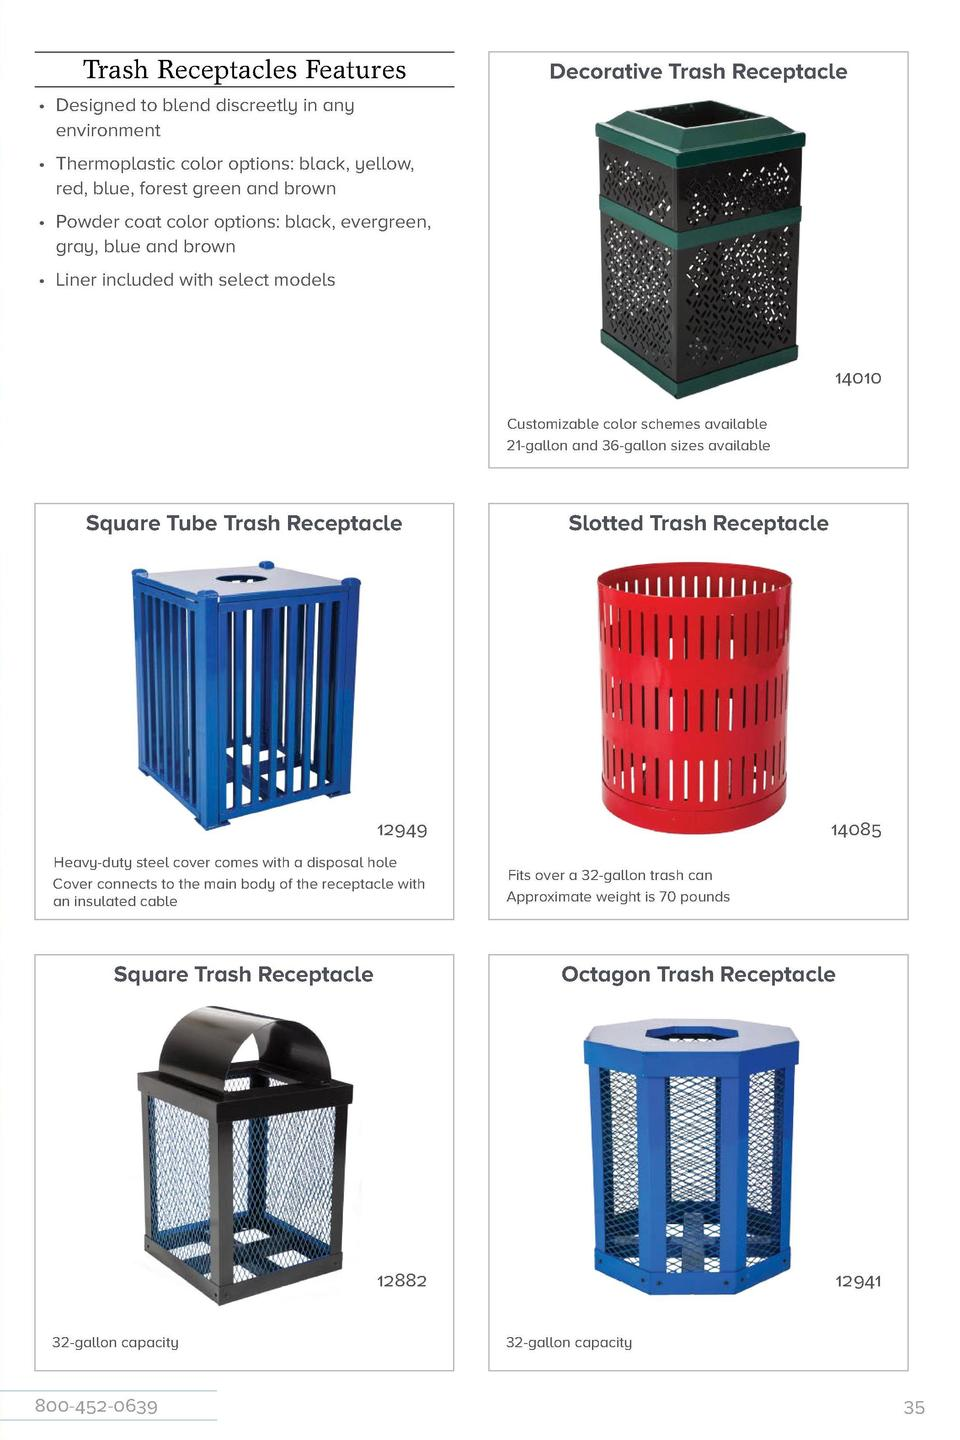 Jamestown Advanced Trash   Recycling Receptacles  Trash Receptacles Features  Decorative Trash Receptacle          Designe...